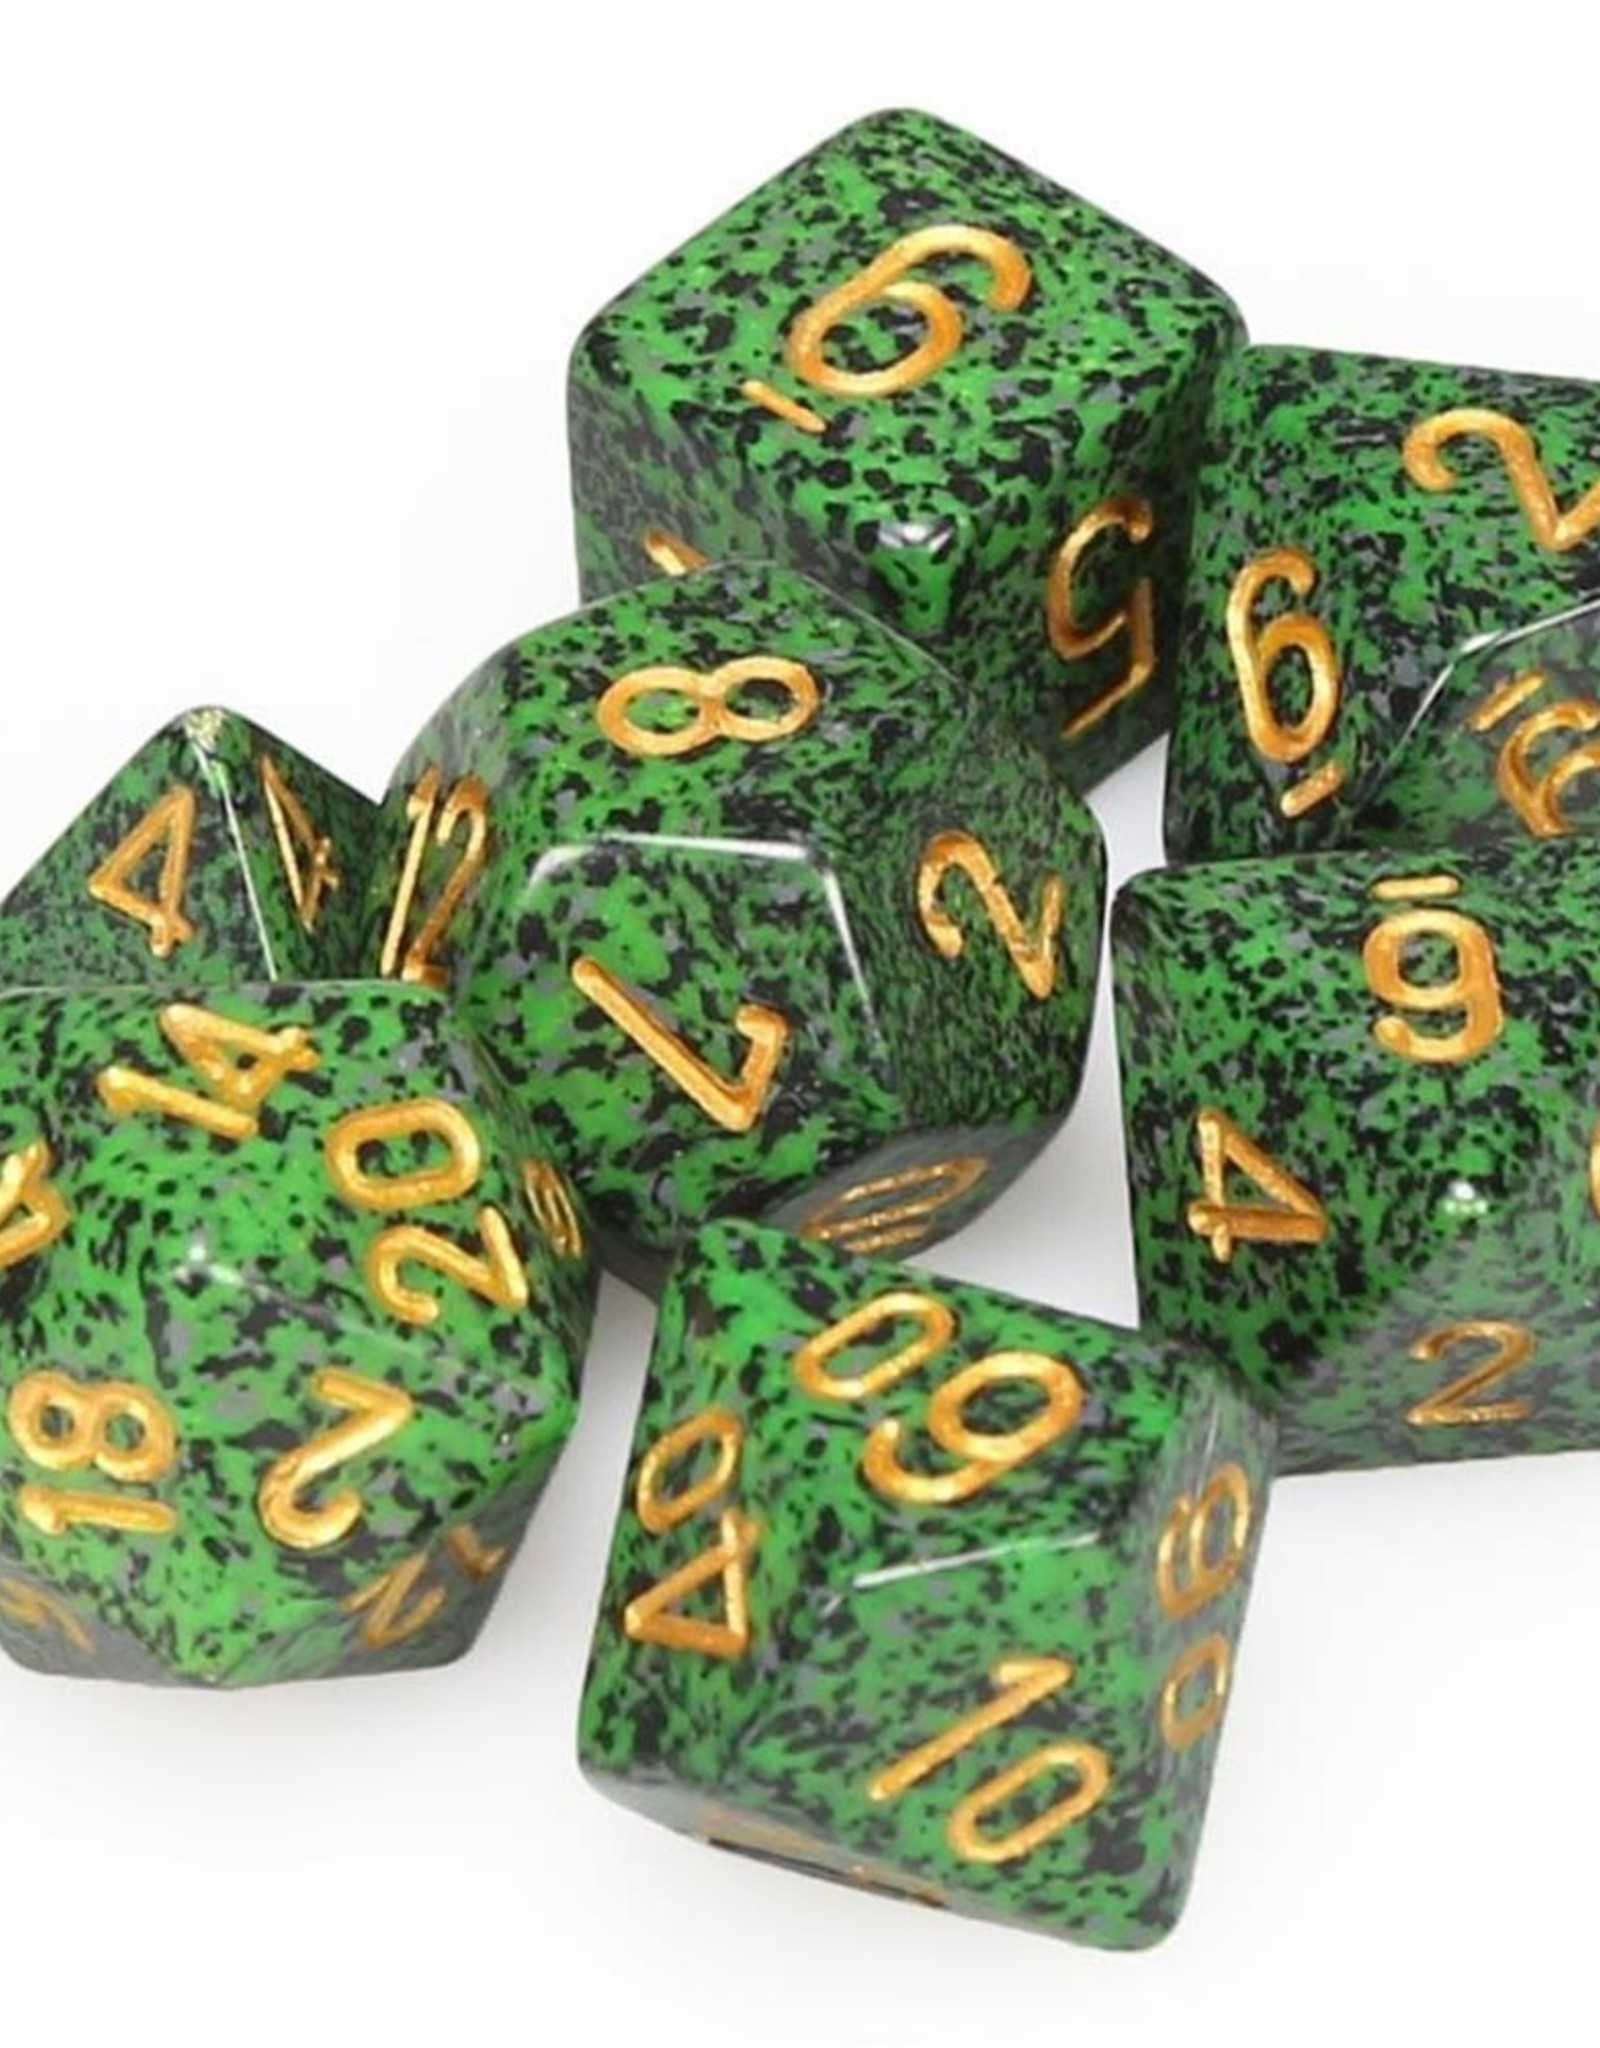 Chessex Chessex 7-Die set Speckled - Golden Recon